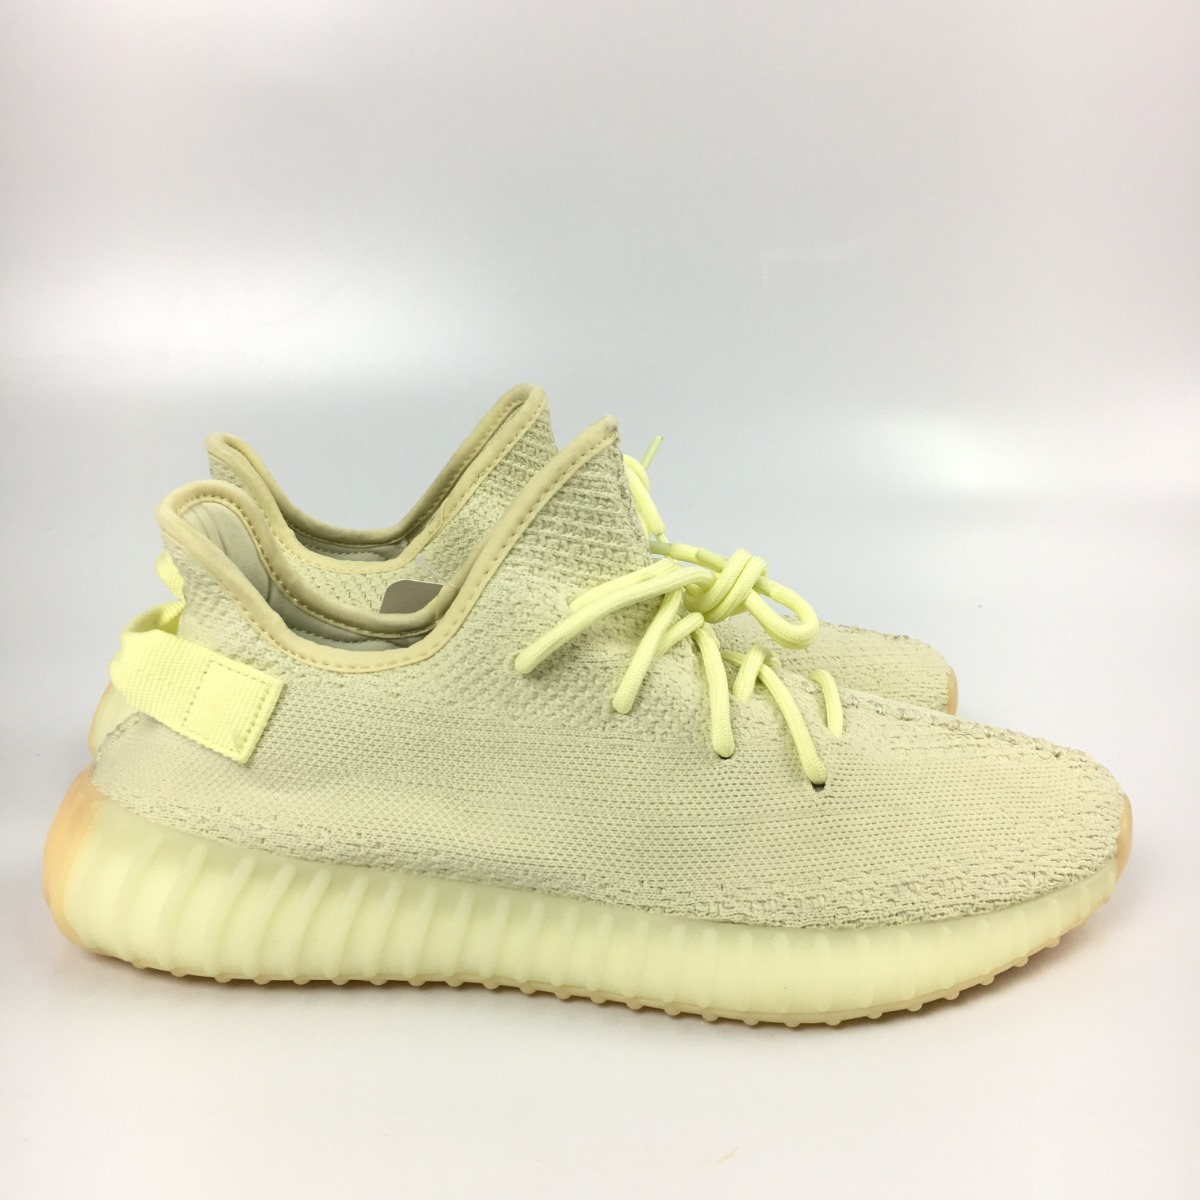 low priced 4b460 25fcf adidas Yeezy Boost 350 V2 Butter